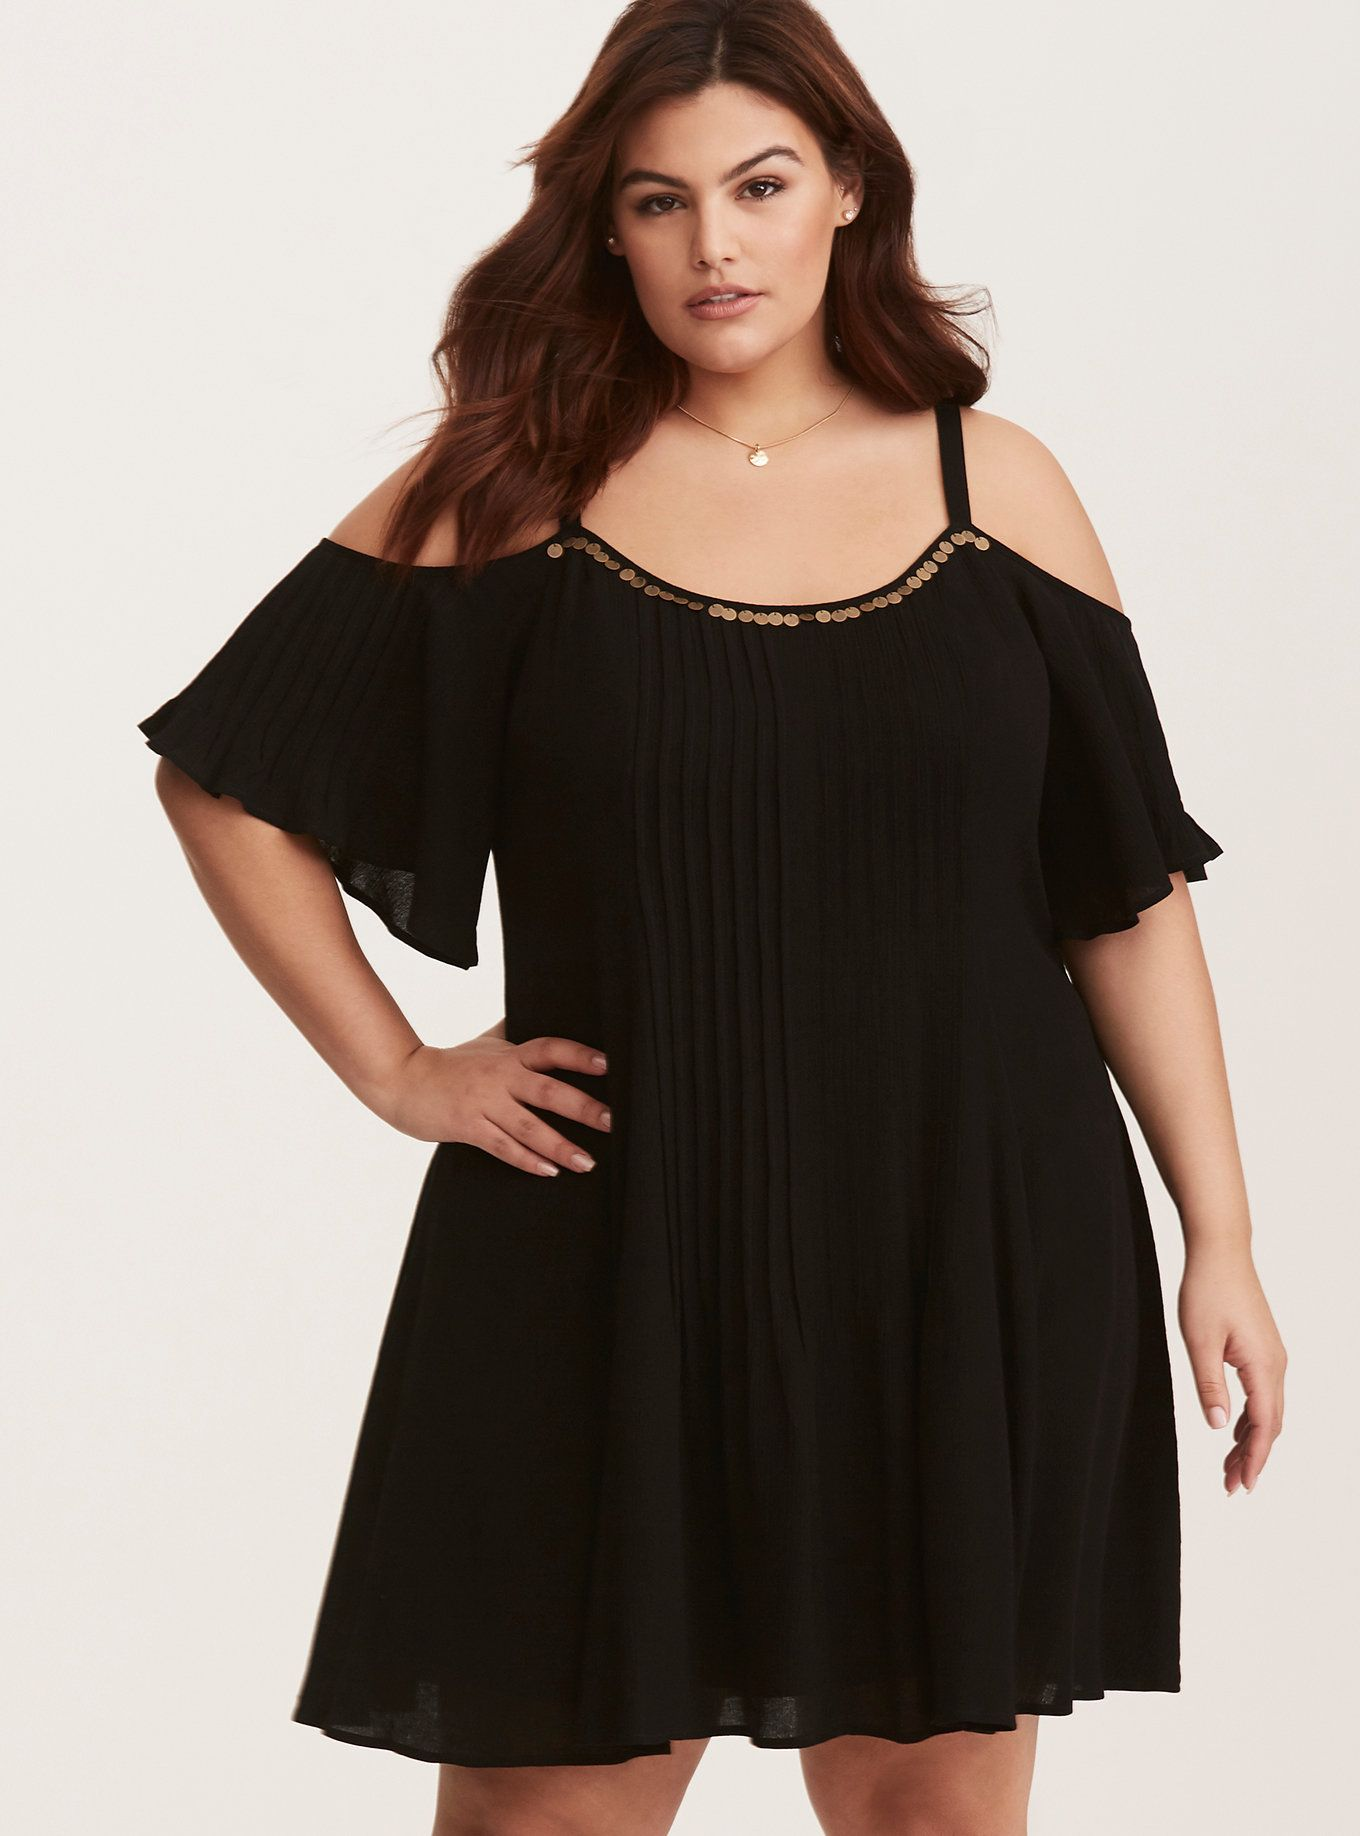 Plus size evening gowns perth